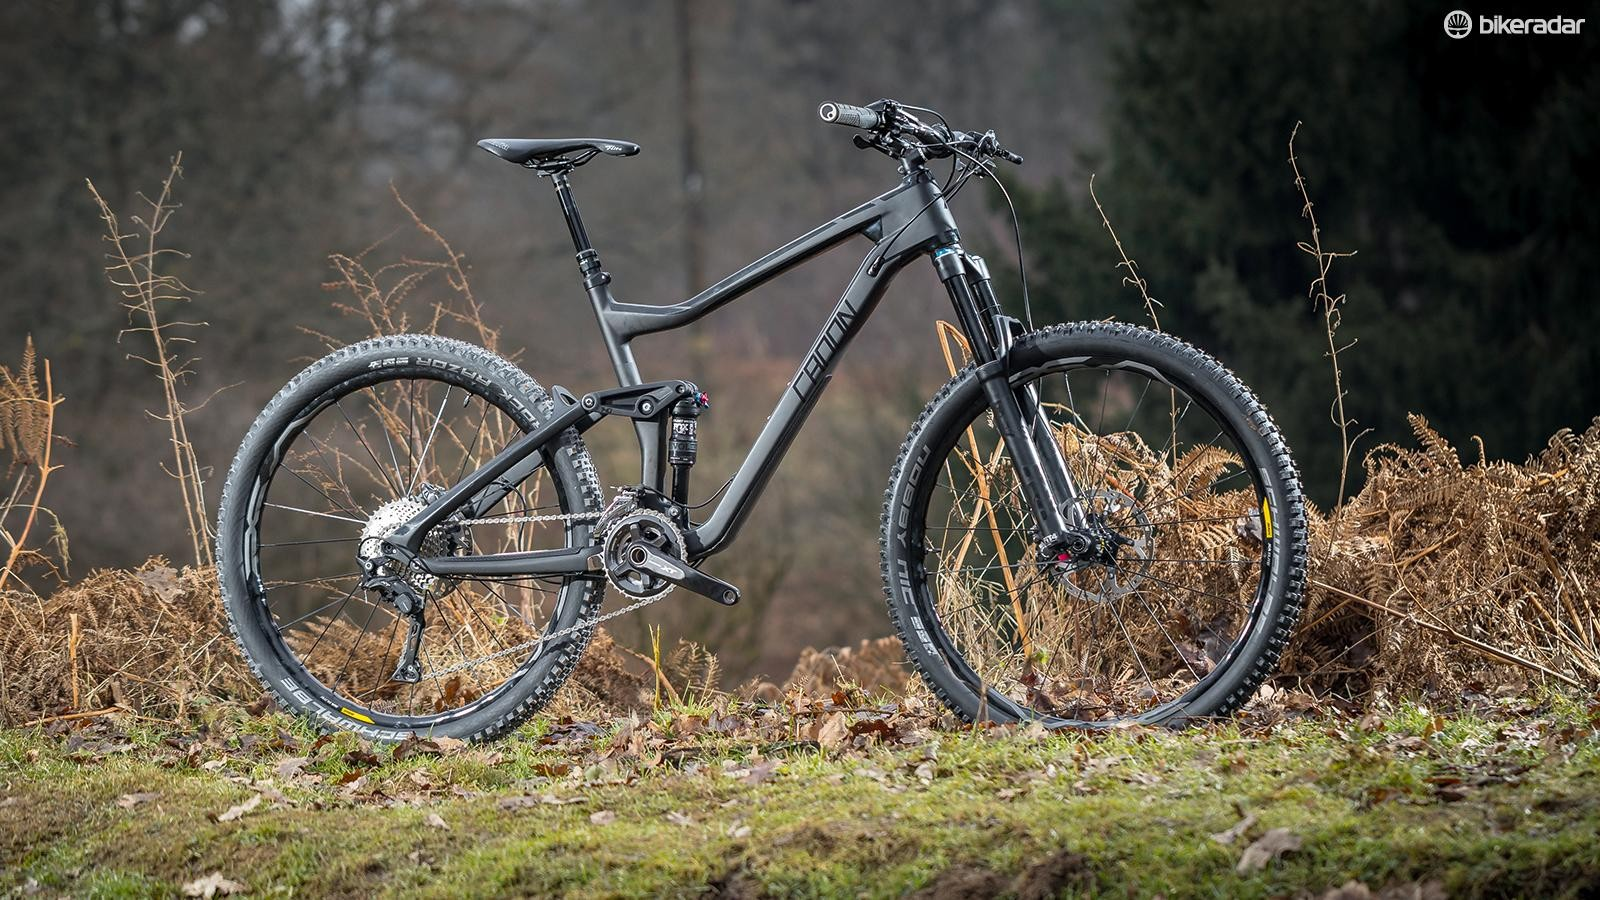 The Radon Slide Carbon 140 9.0